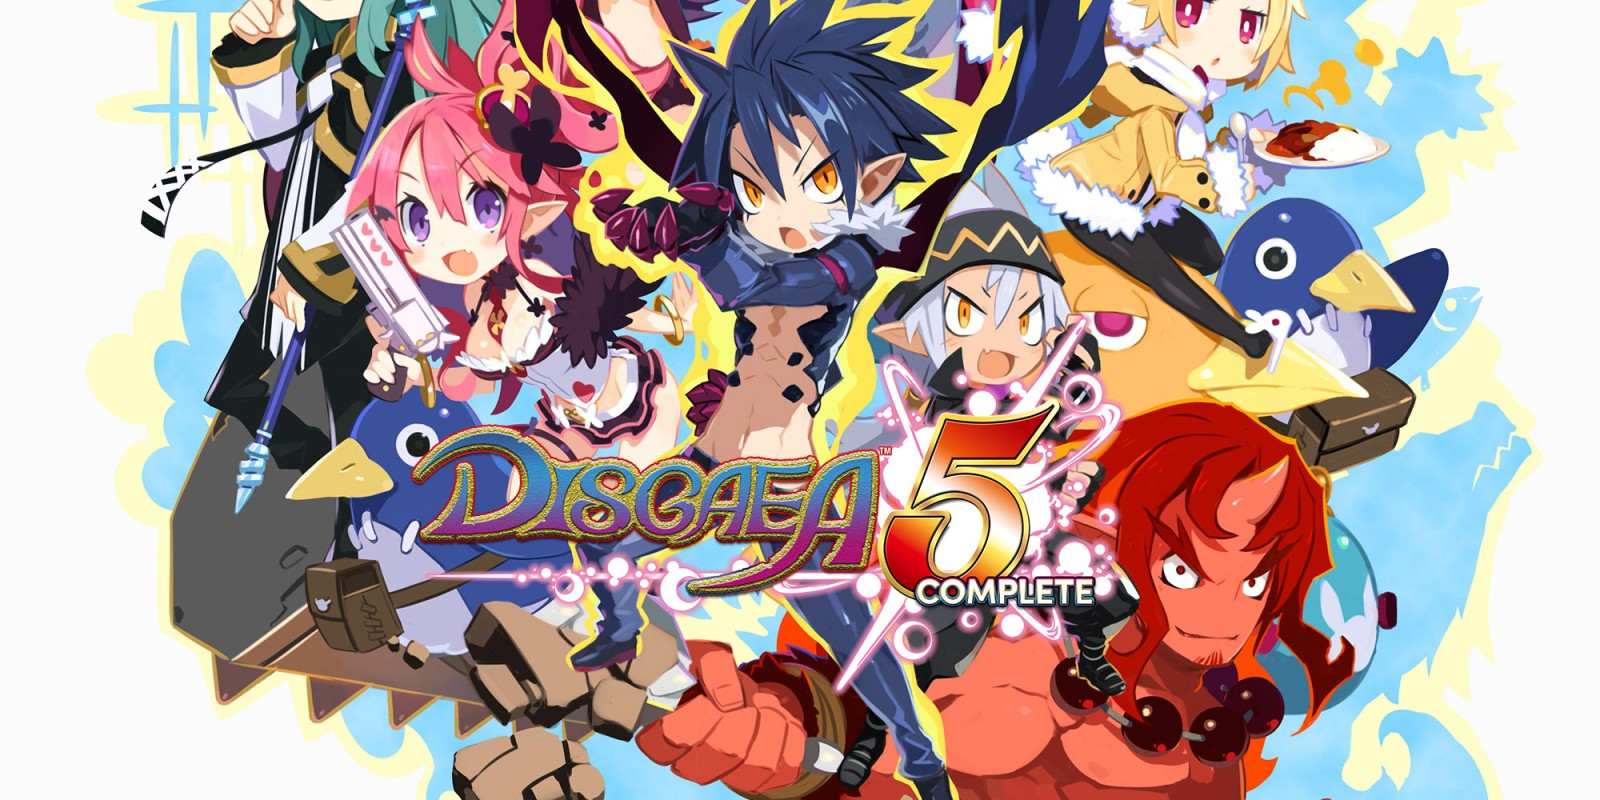 The World Ends With You Iphone Wallpaper Disgaea 5 Complete Nintendo Switch Juegos Nintendo